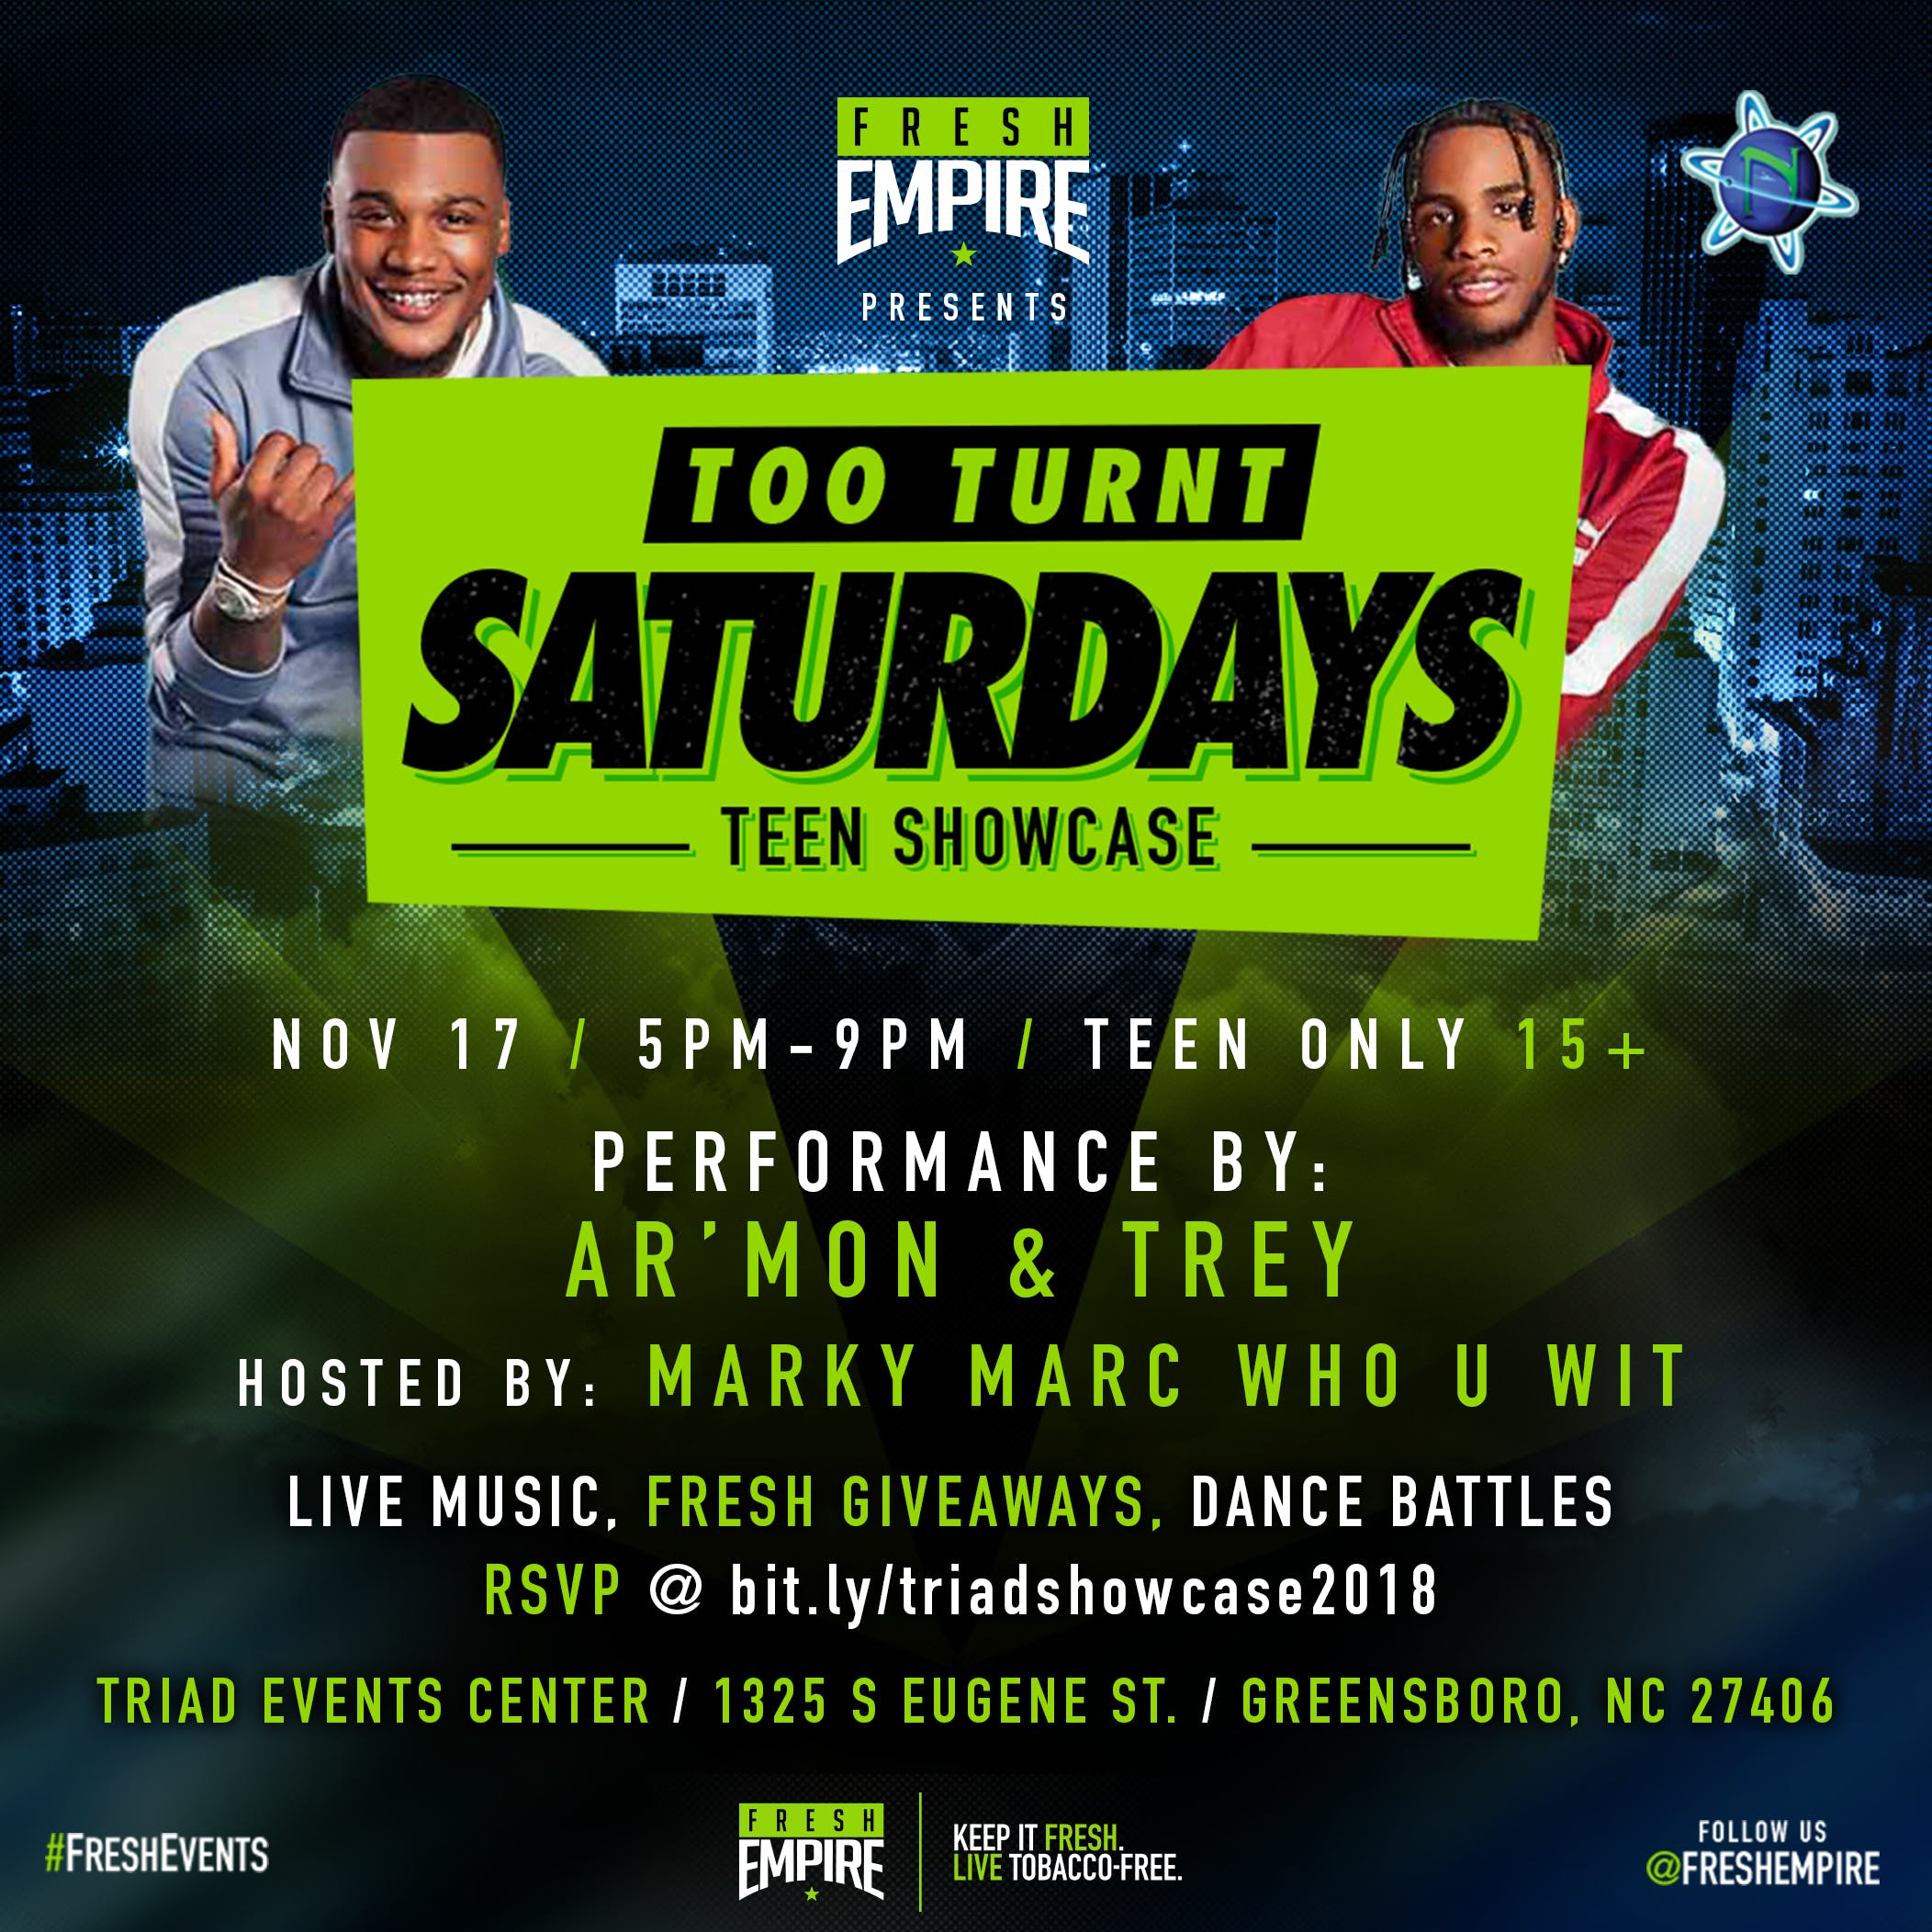 Too Turnt Teen Showcase